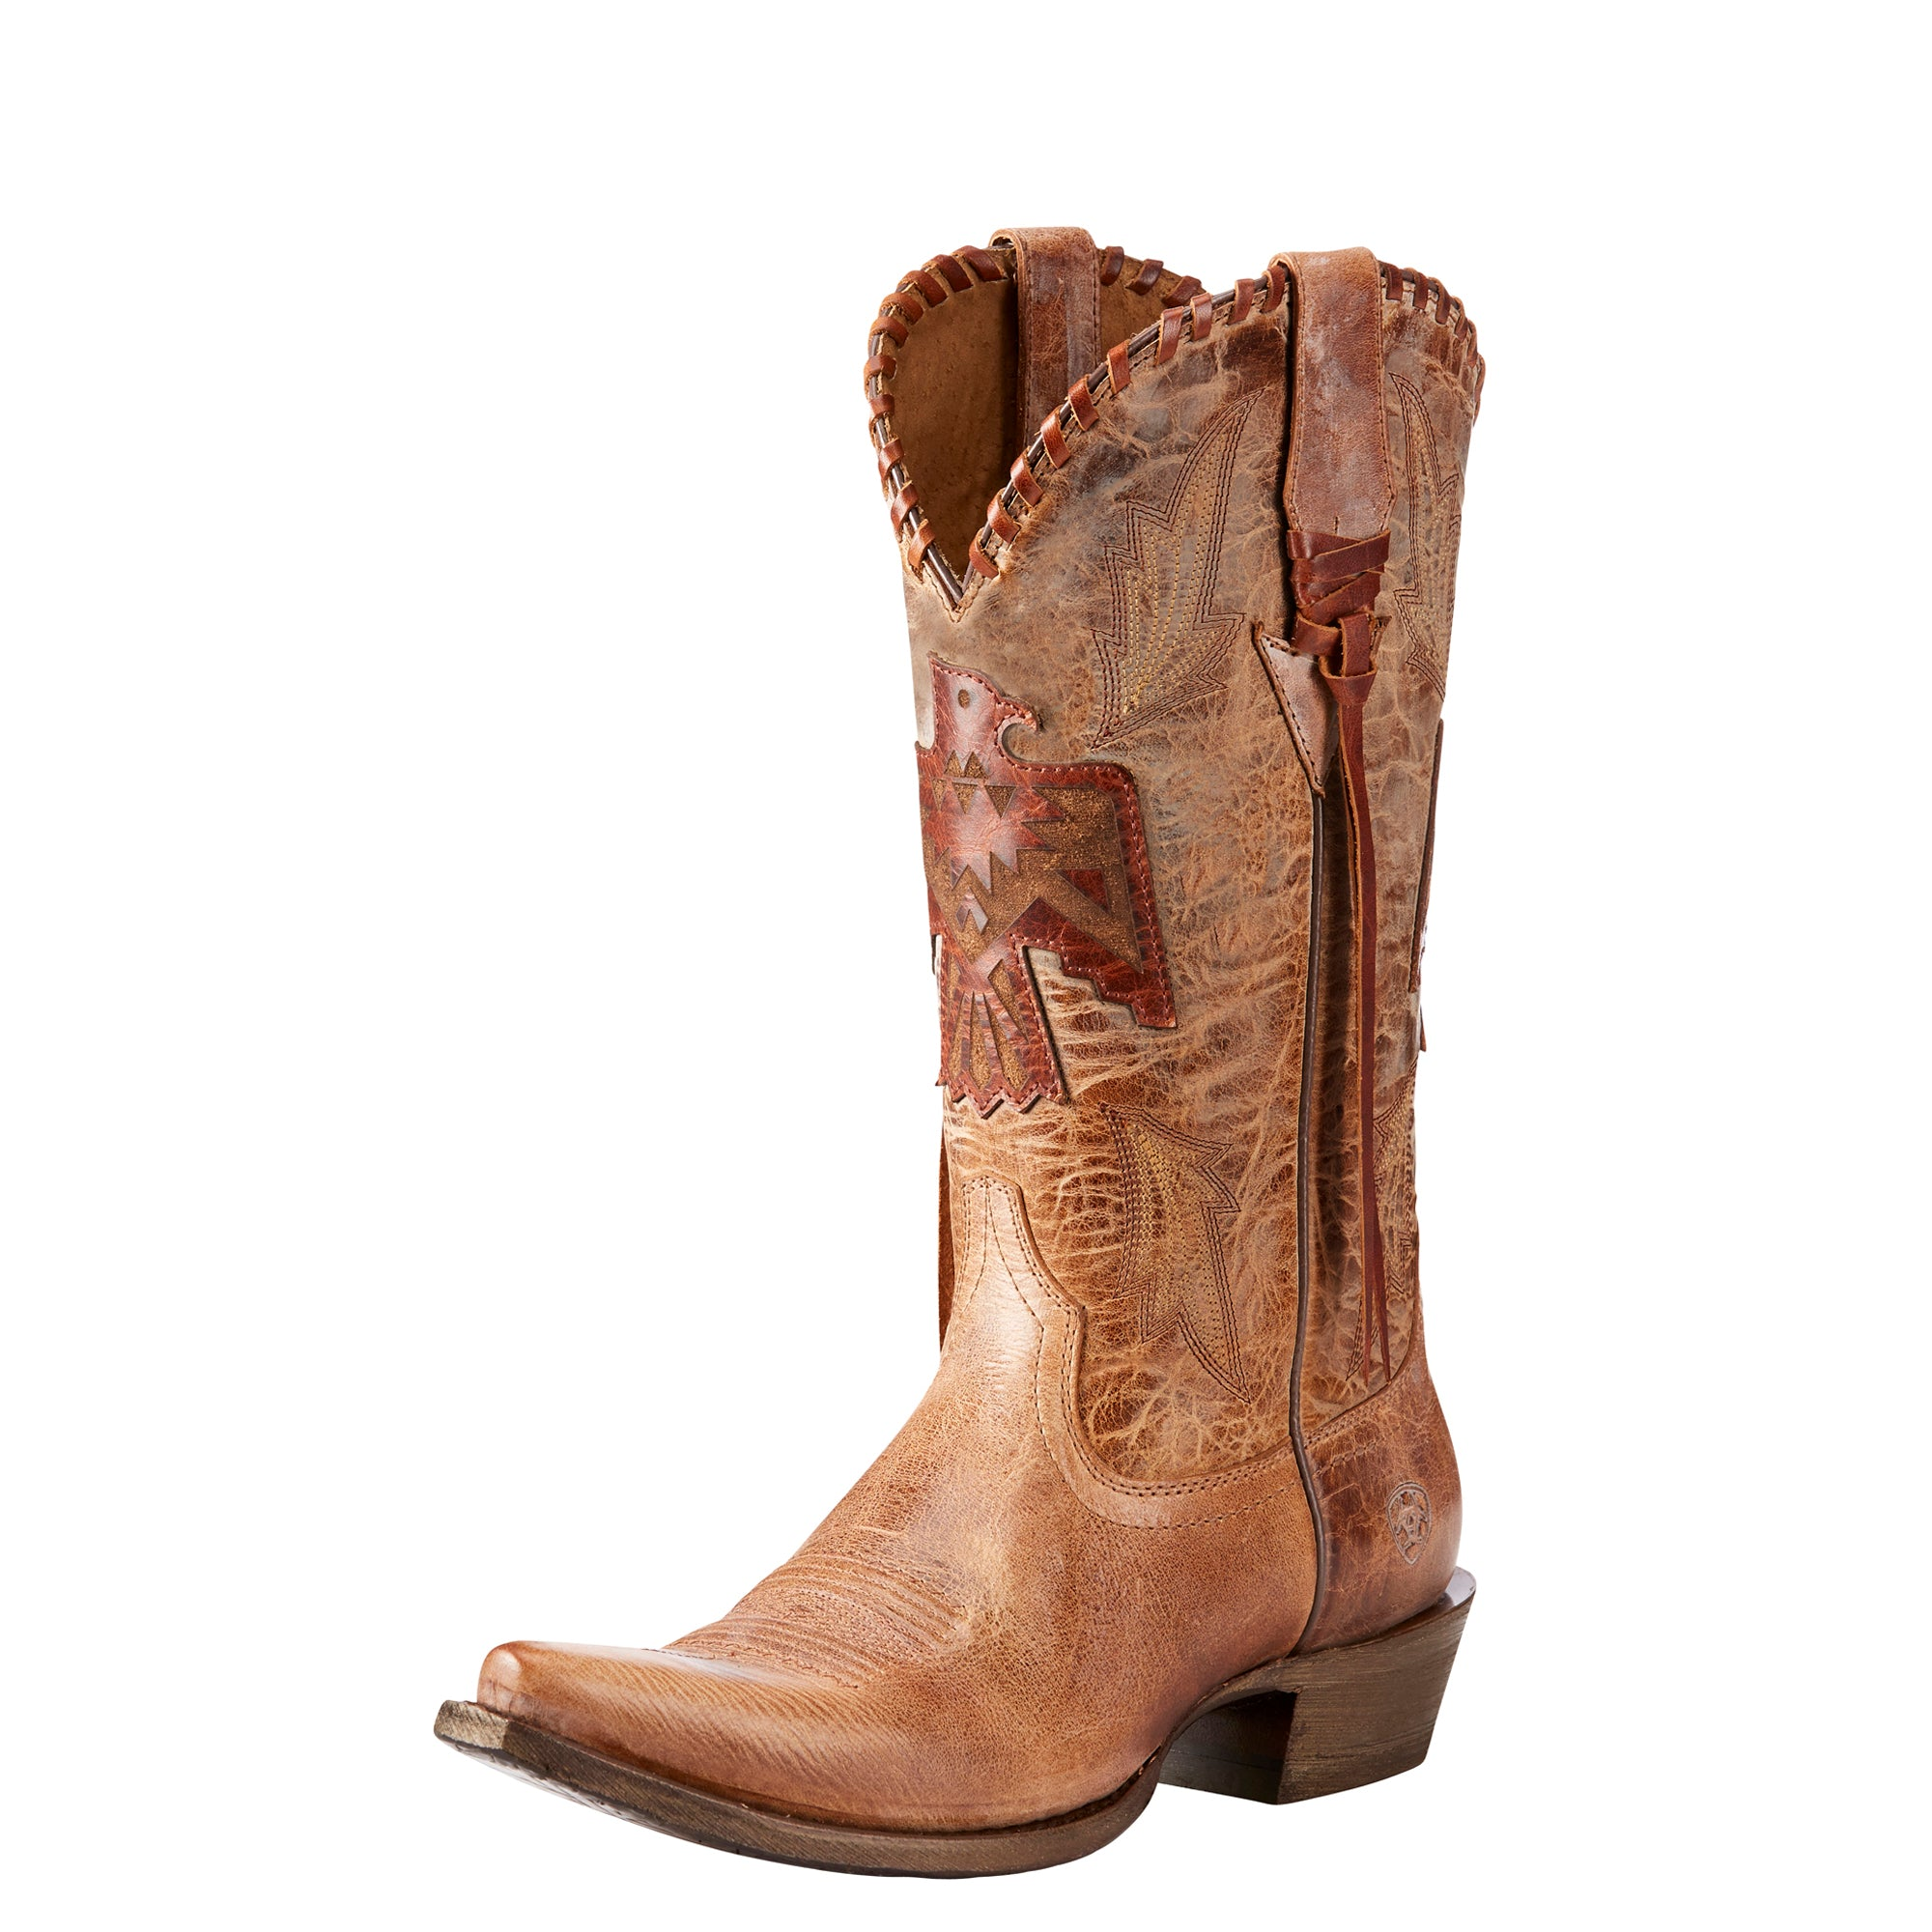 Ariat Thunderbird X-Toe Women's Boot